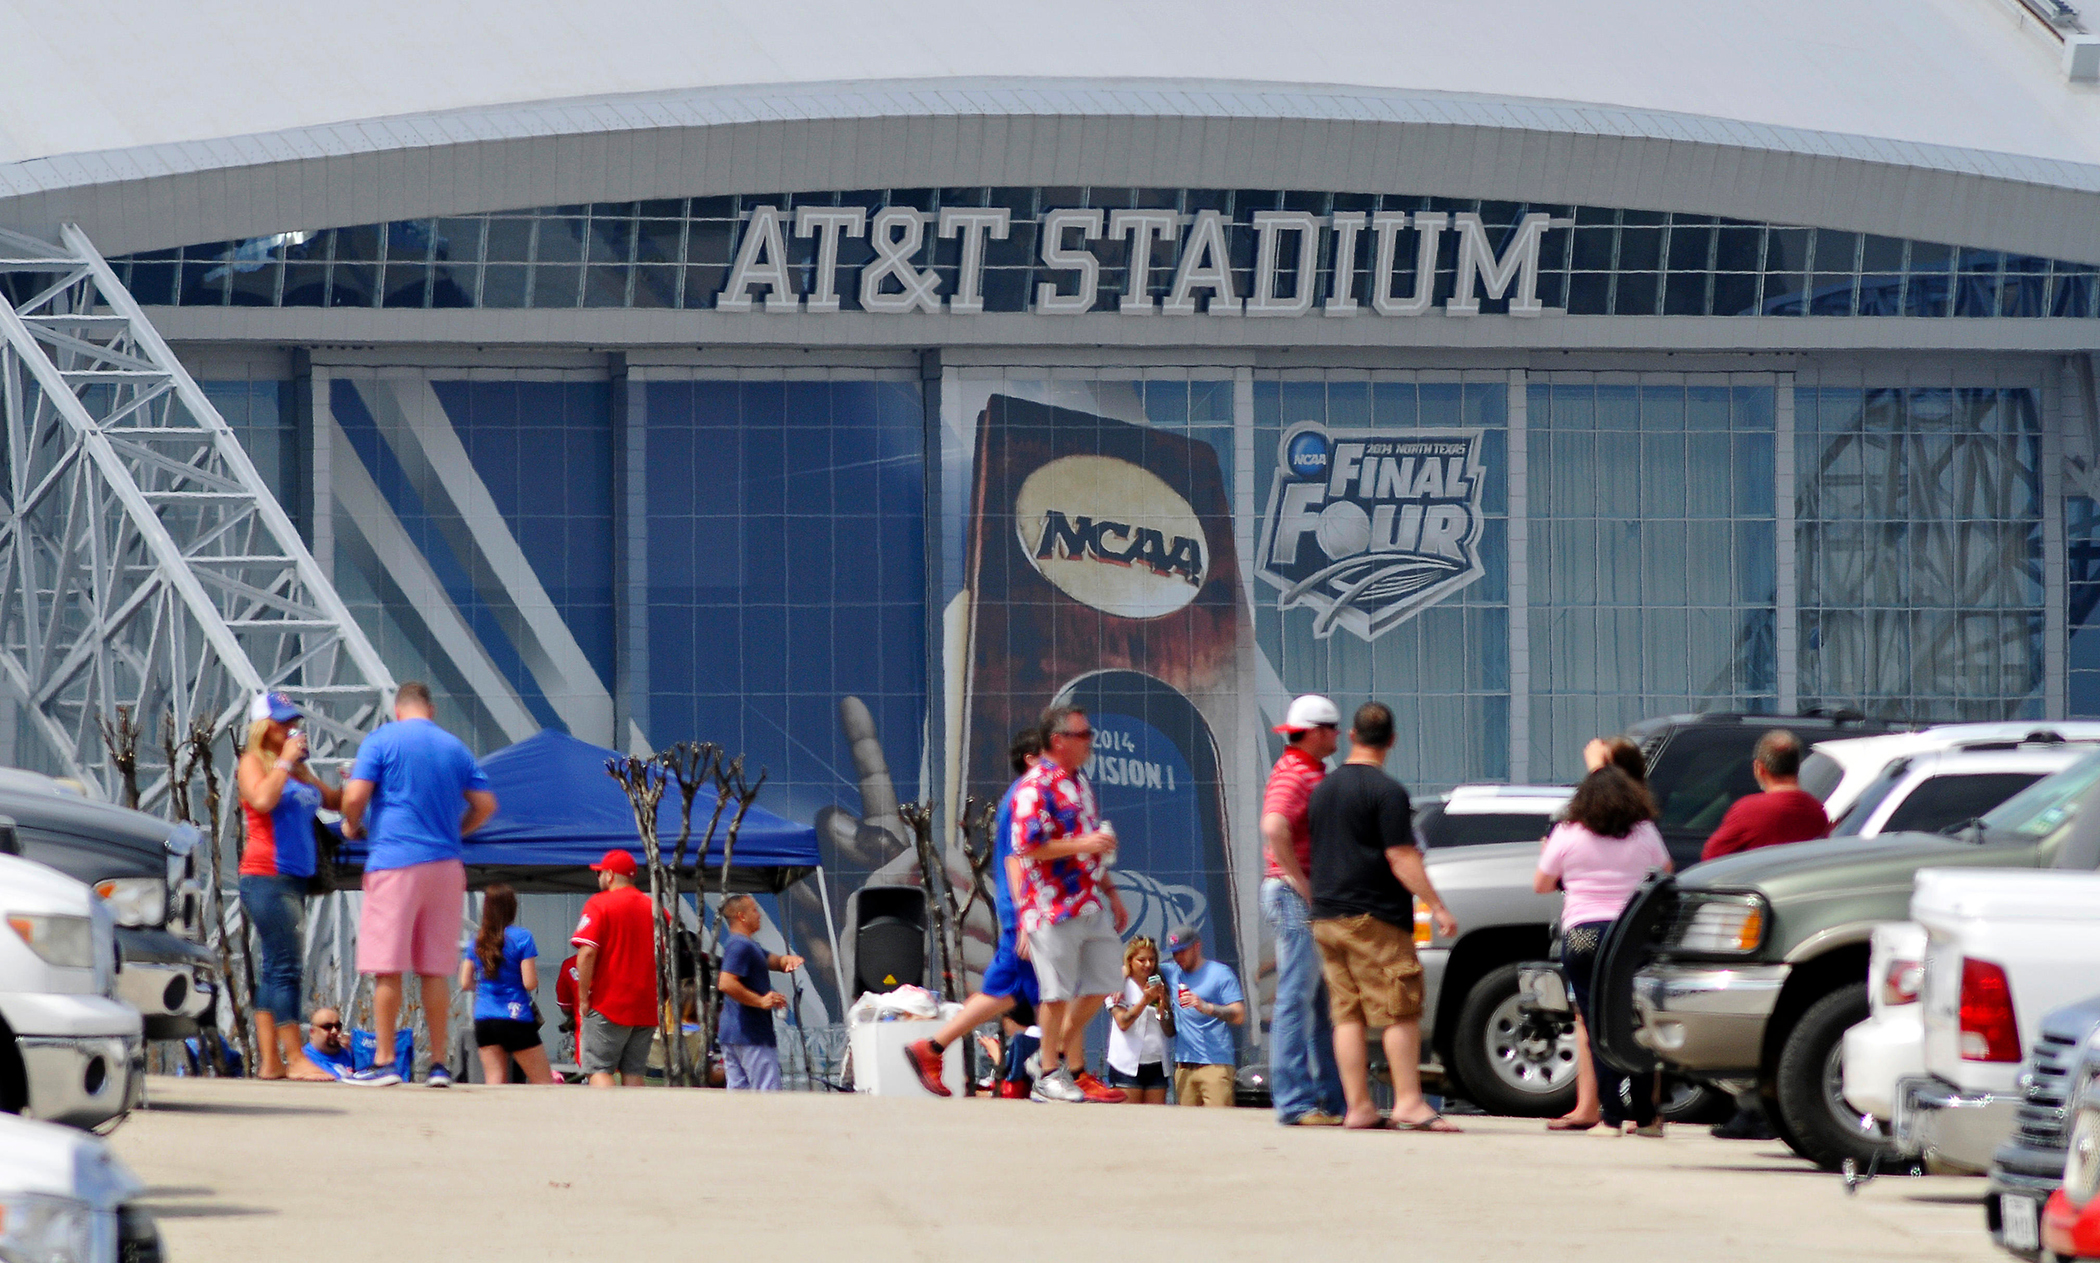 Baseball fans tailgate in the parking lots next to At&T Stadium, March 31, 2014.